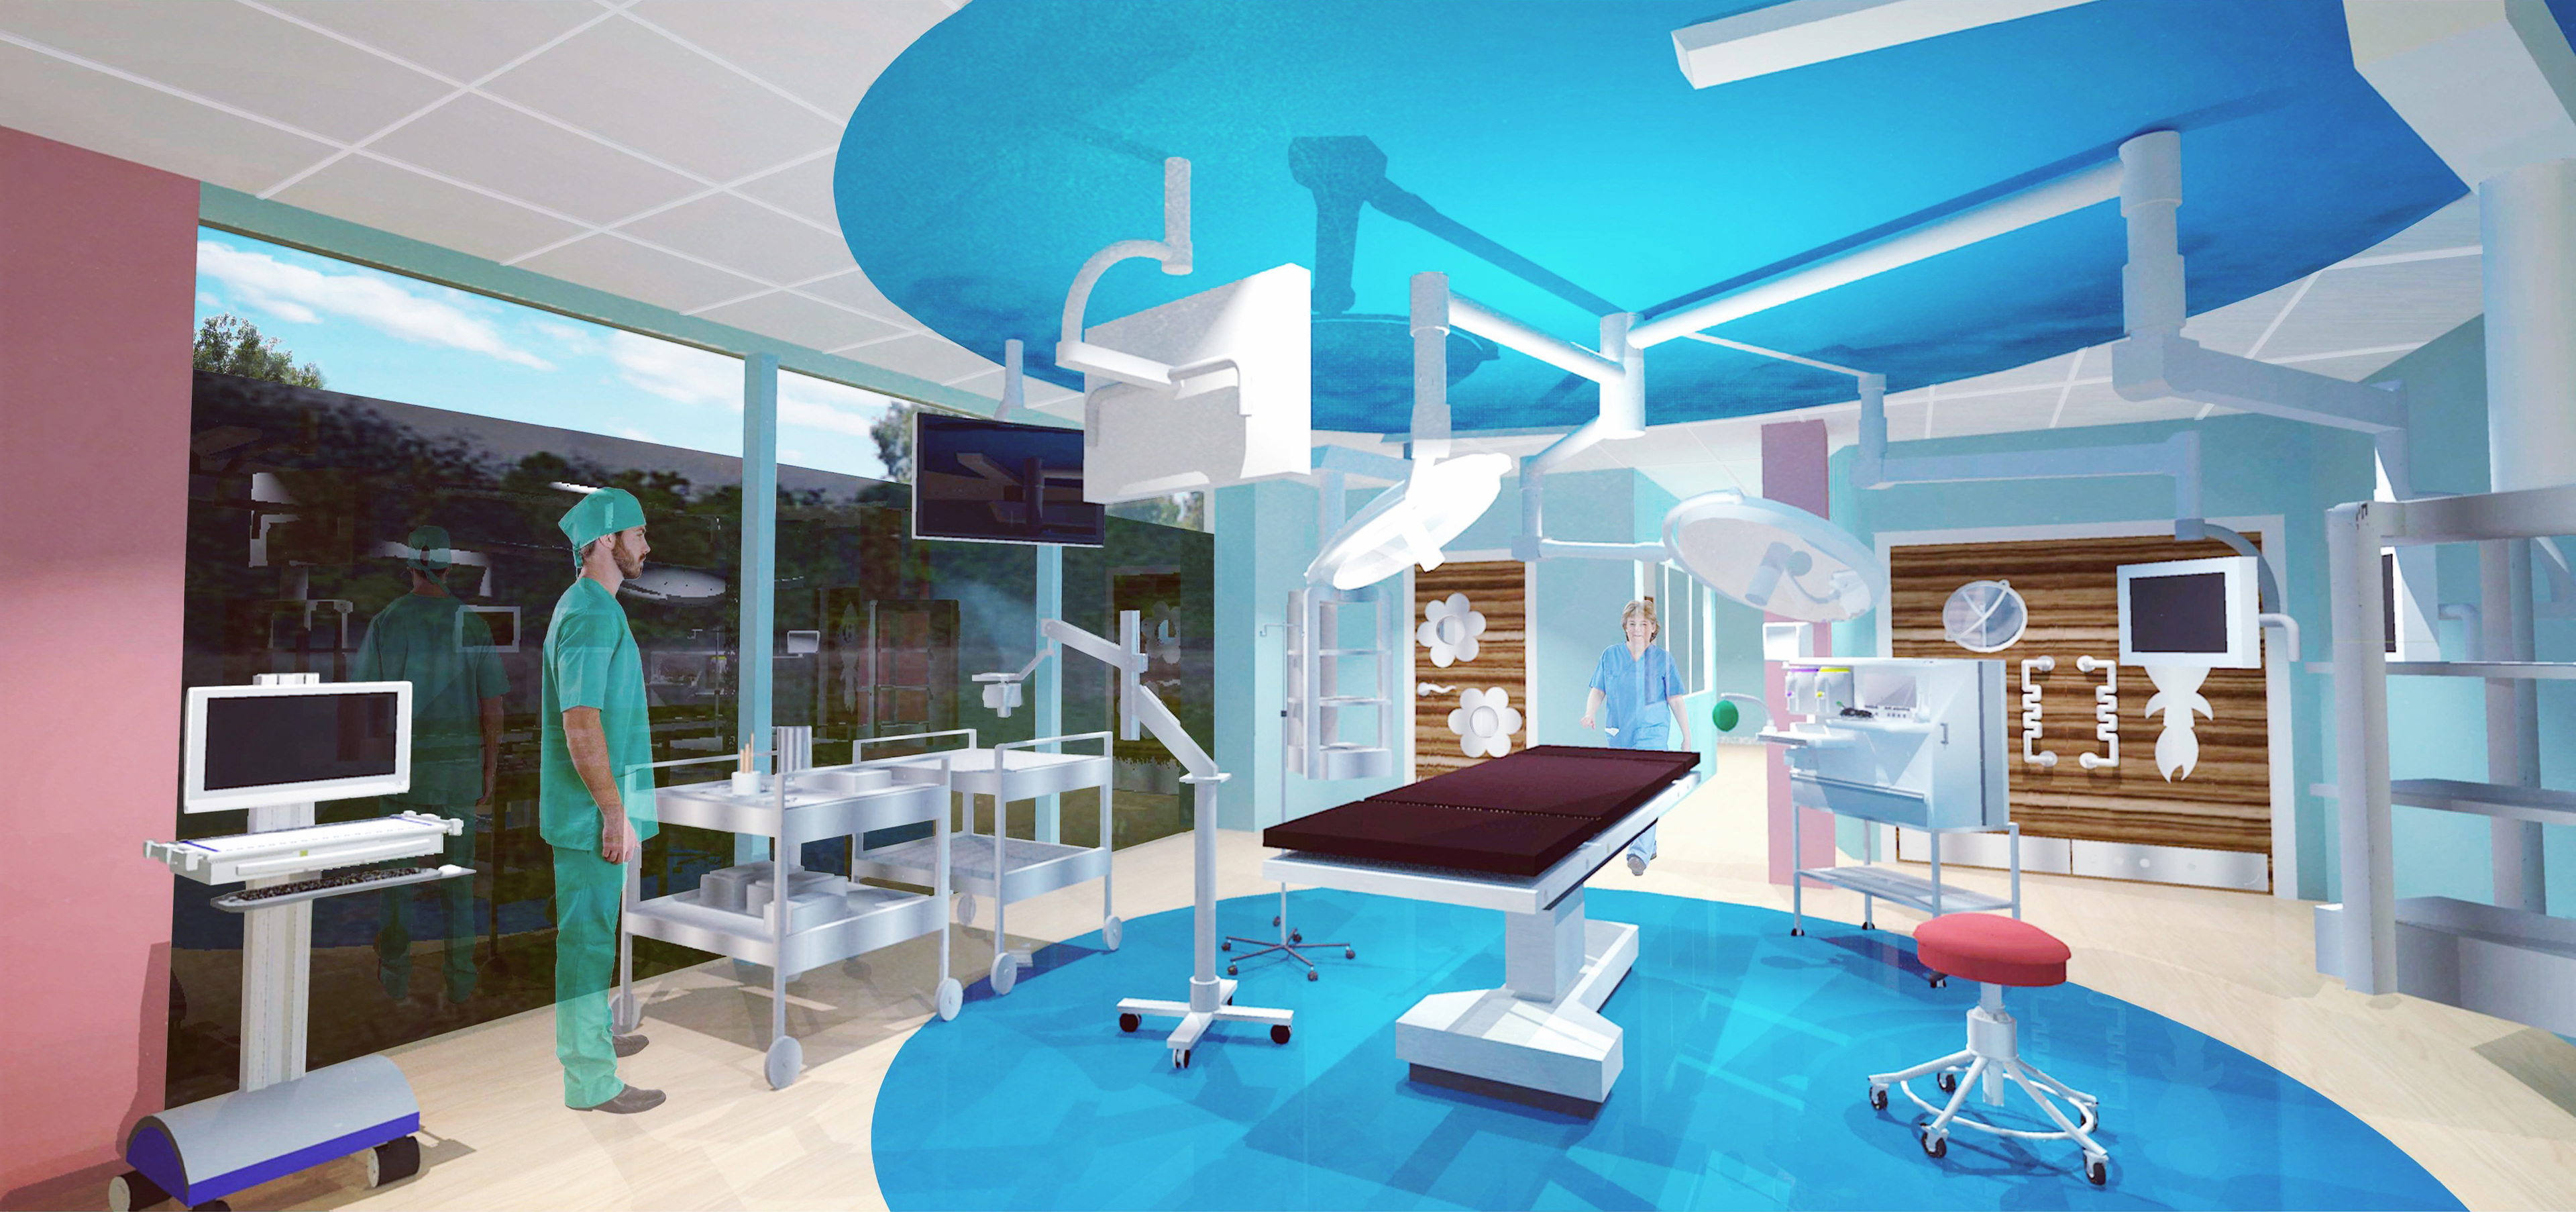 One of the operating theatres.